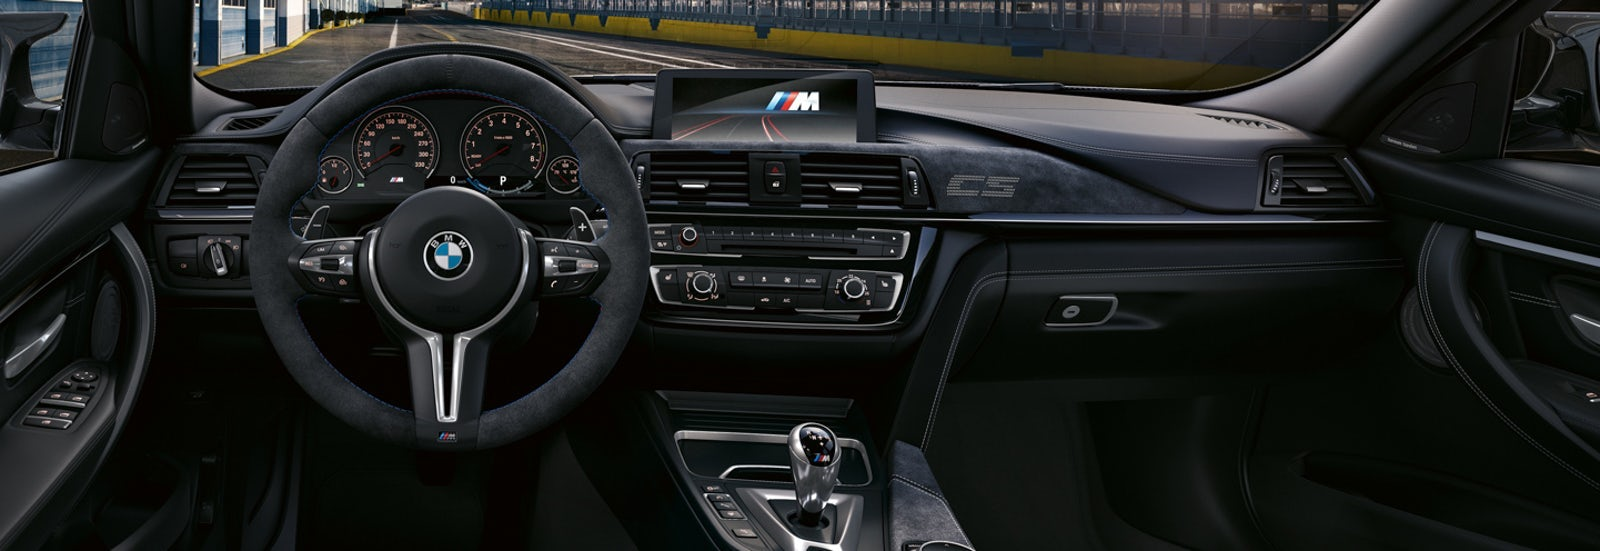 2020 Bmw M3 Price Specs And Release Date Carwow